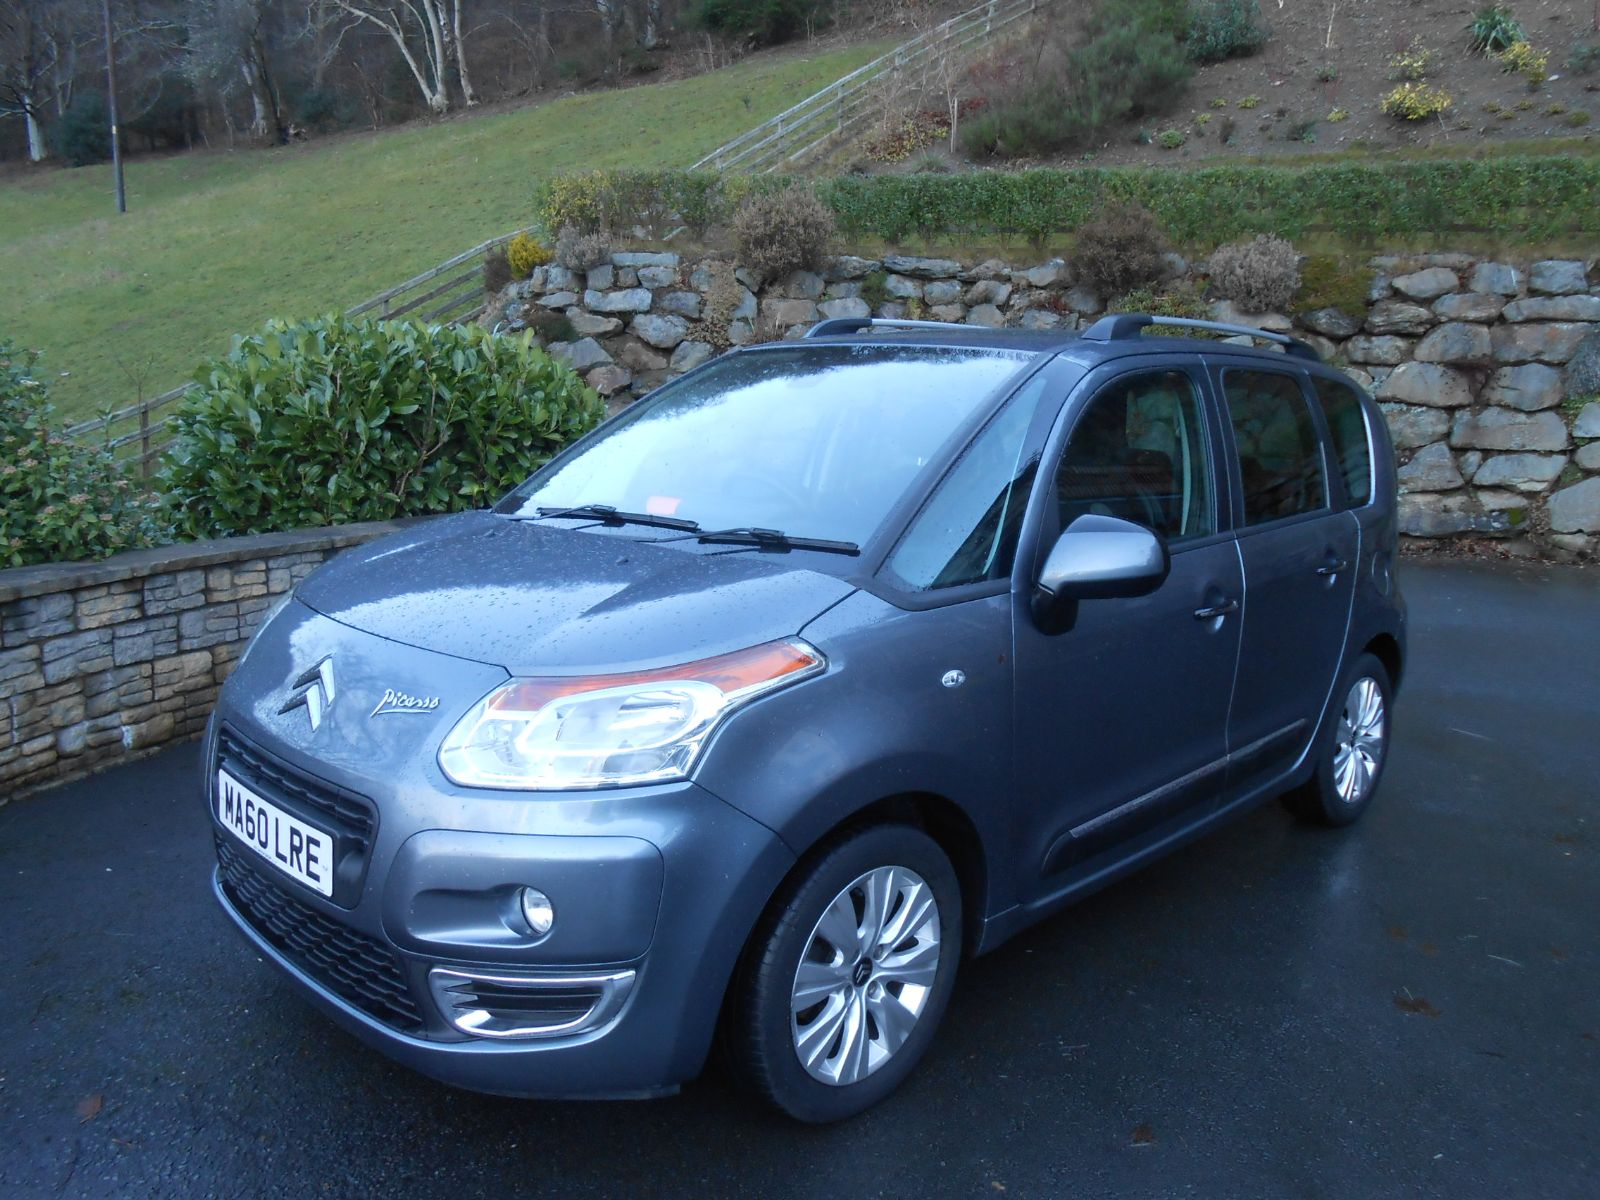 Citroen C3 Picasso 1 6 Hdi 90 Exclusive Car For Sale